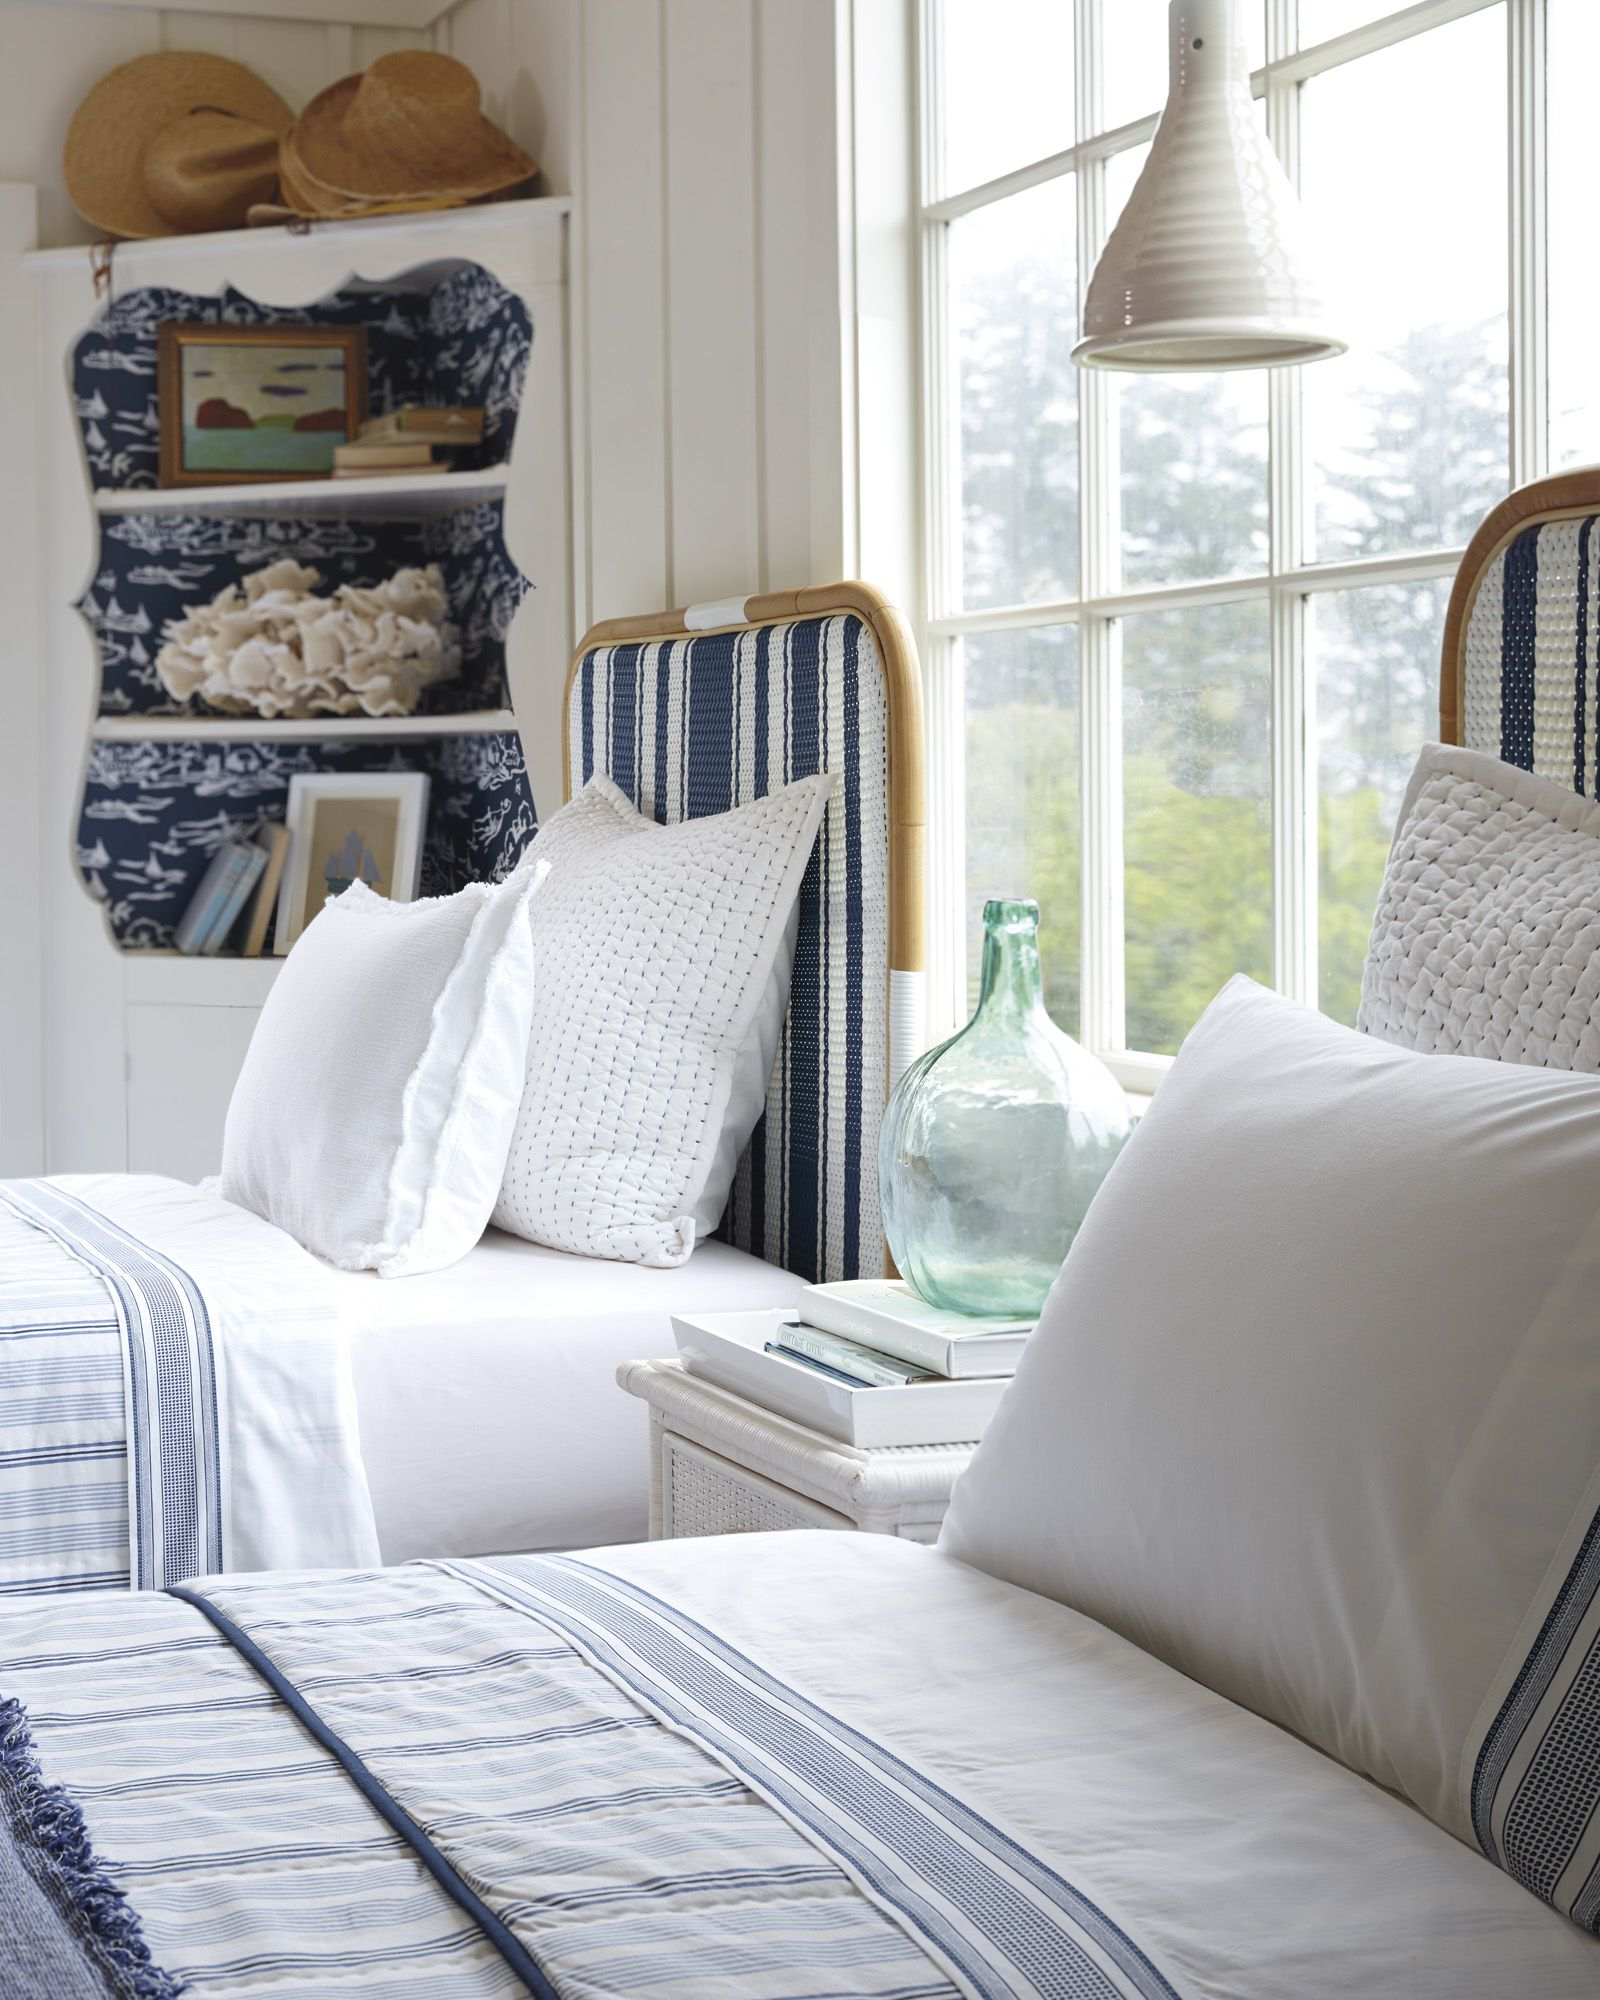 twin bed decked out in navy white riviera headboard via serena